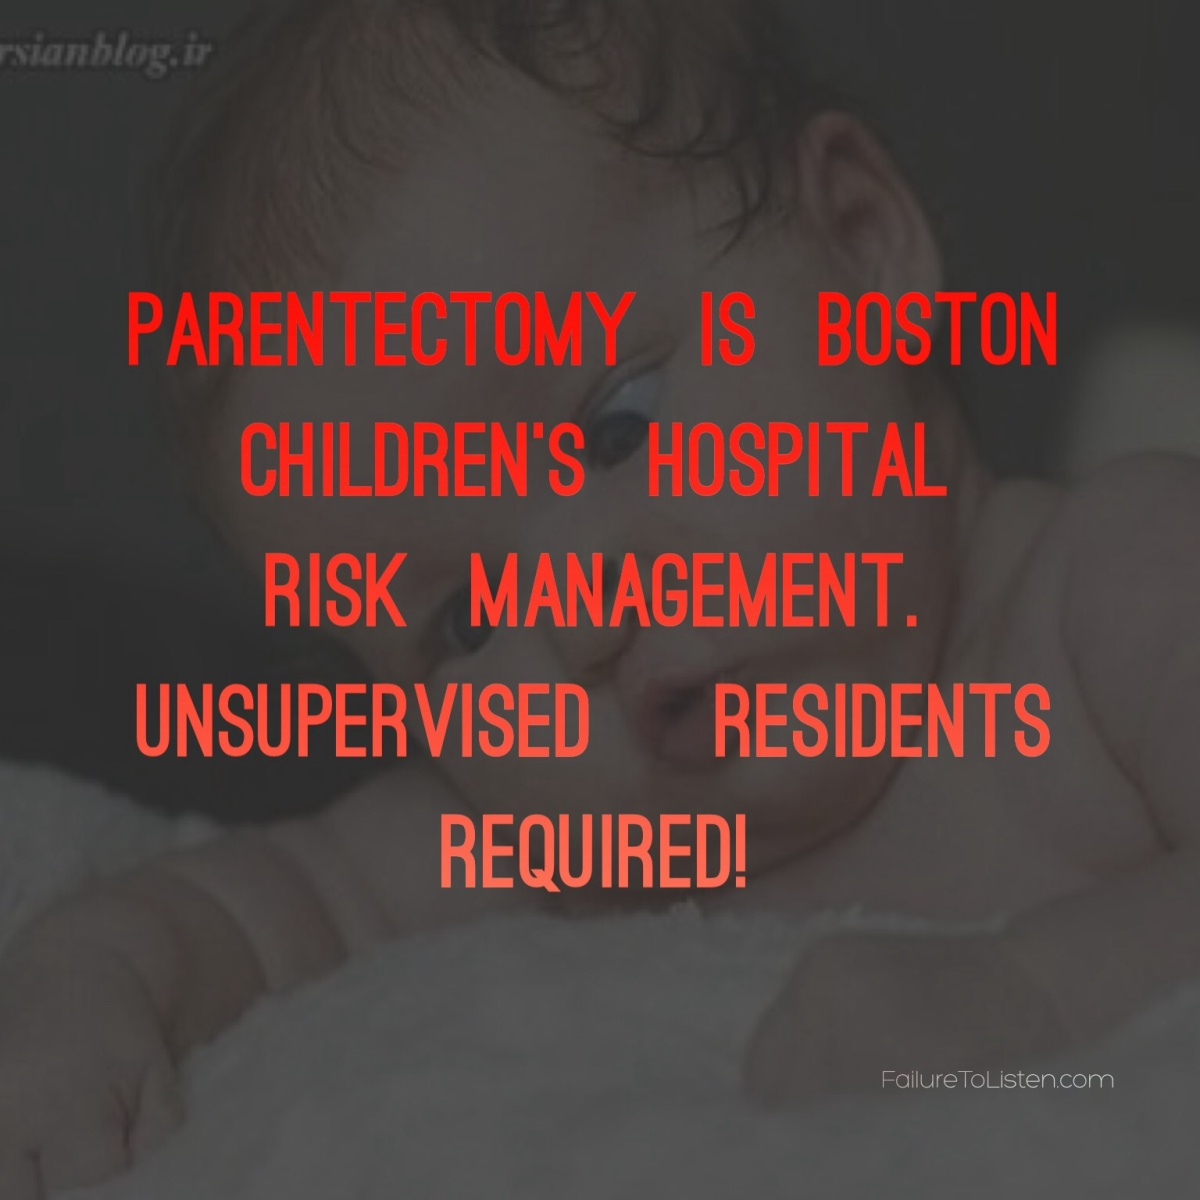 https://failuretolisten.com/2014/03/15/what-are-the-indications-for-parentectomy/